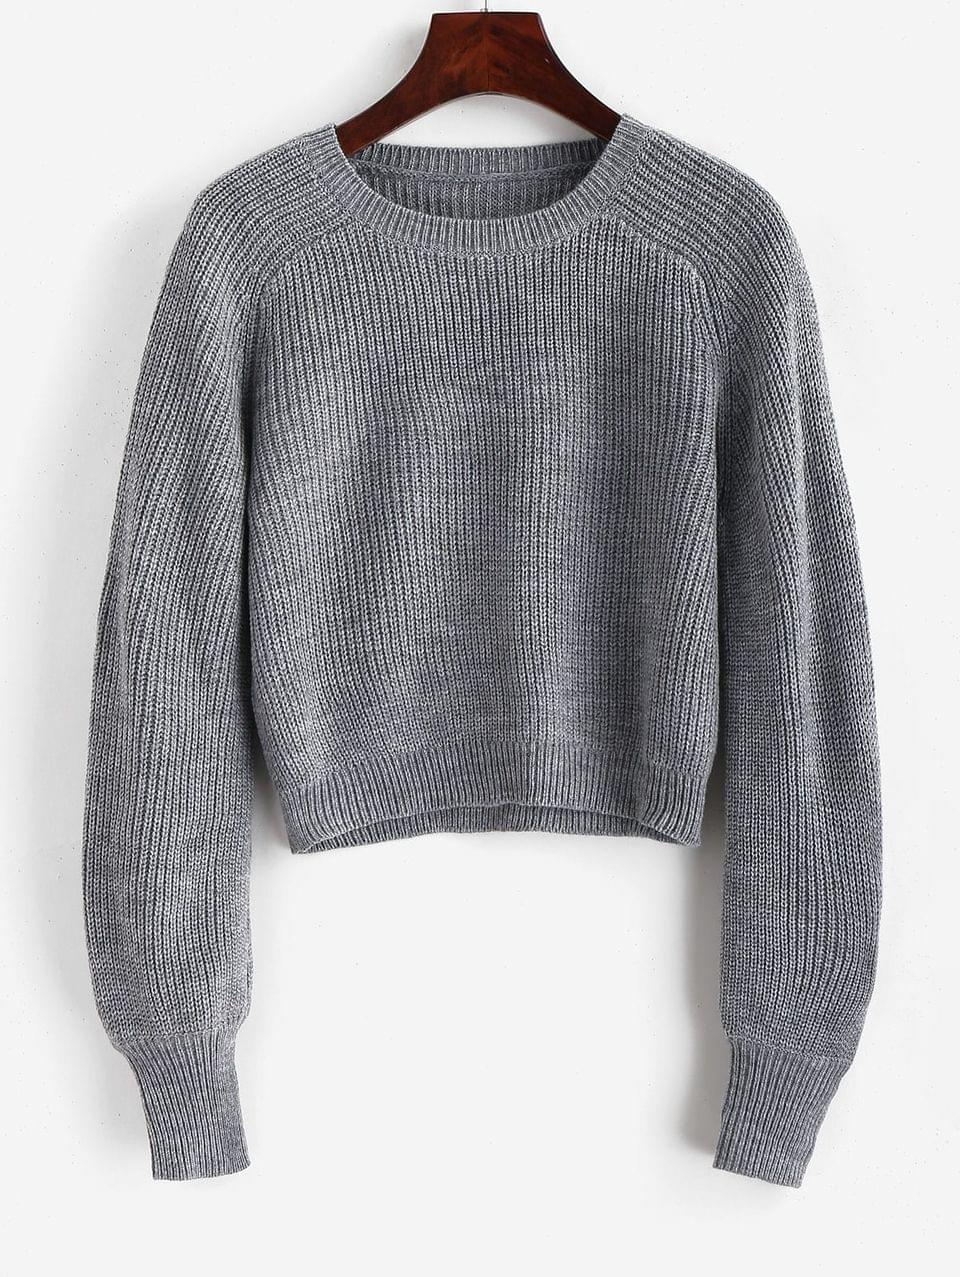 Women's Raglan Sleeve Crew Neck Pullover Sweater - Gray L